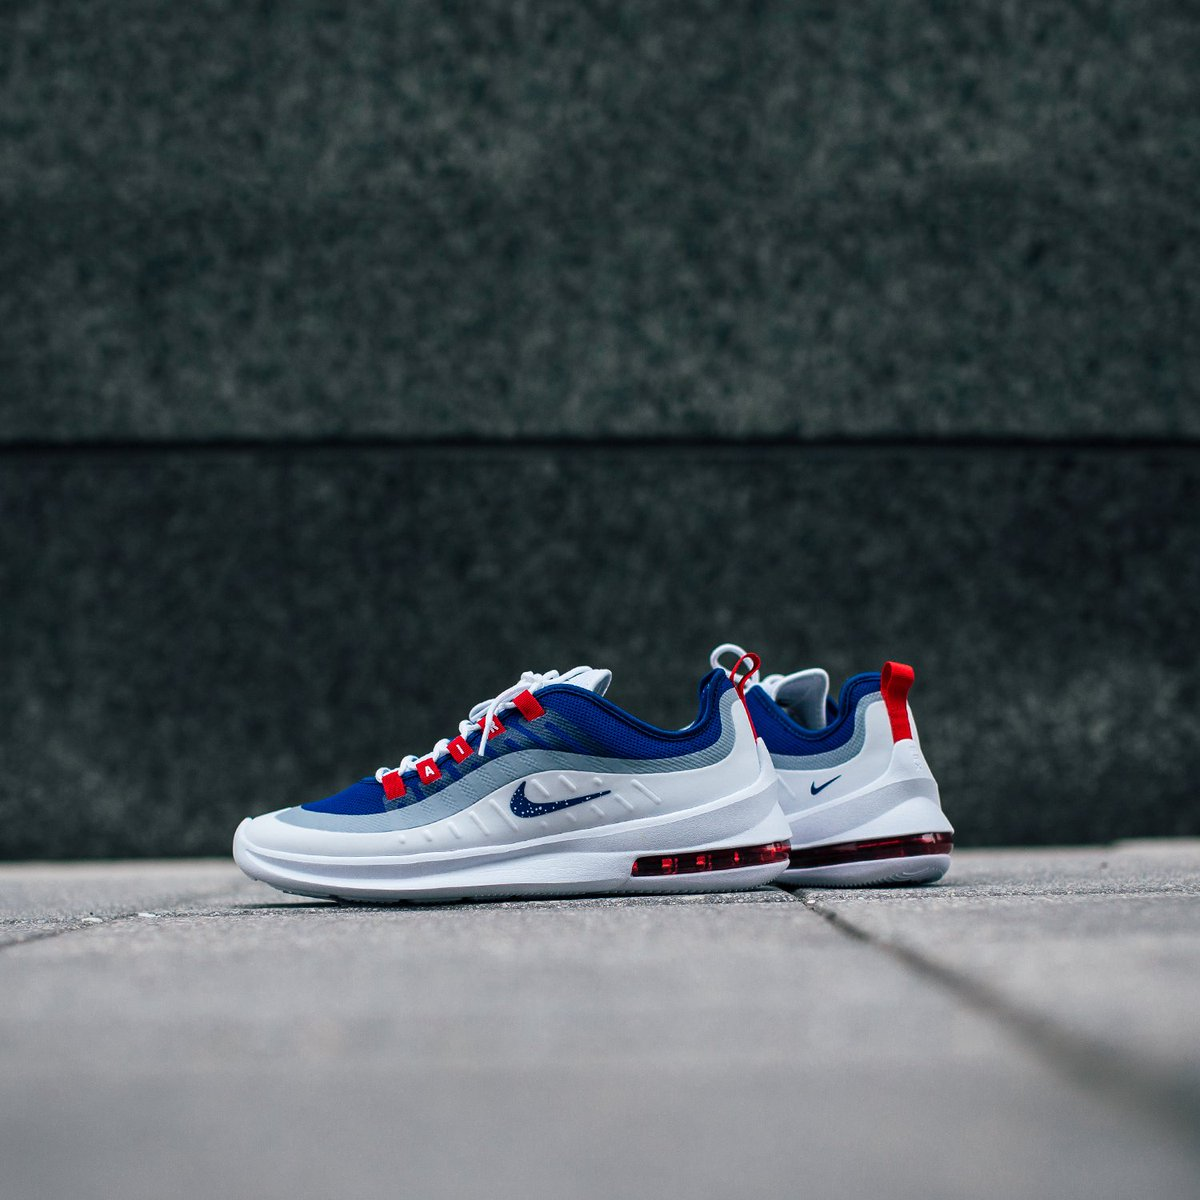 pretty nice c7bac 53d99 Get ready for the next generation of air! The Men s Nike Air Max Axis is  now available to shop at VILLA! Cop up here  https   goo.gl AcRdRs  pic.twitter.com  ...